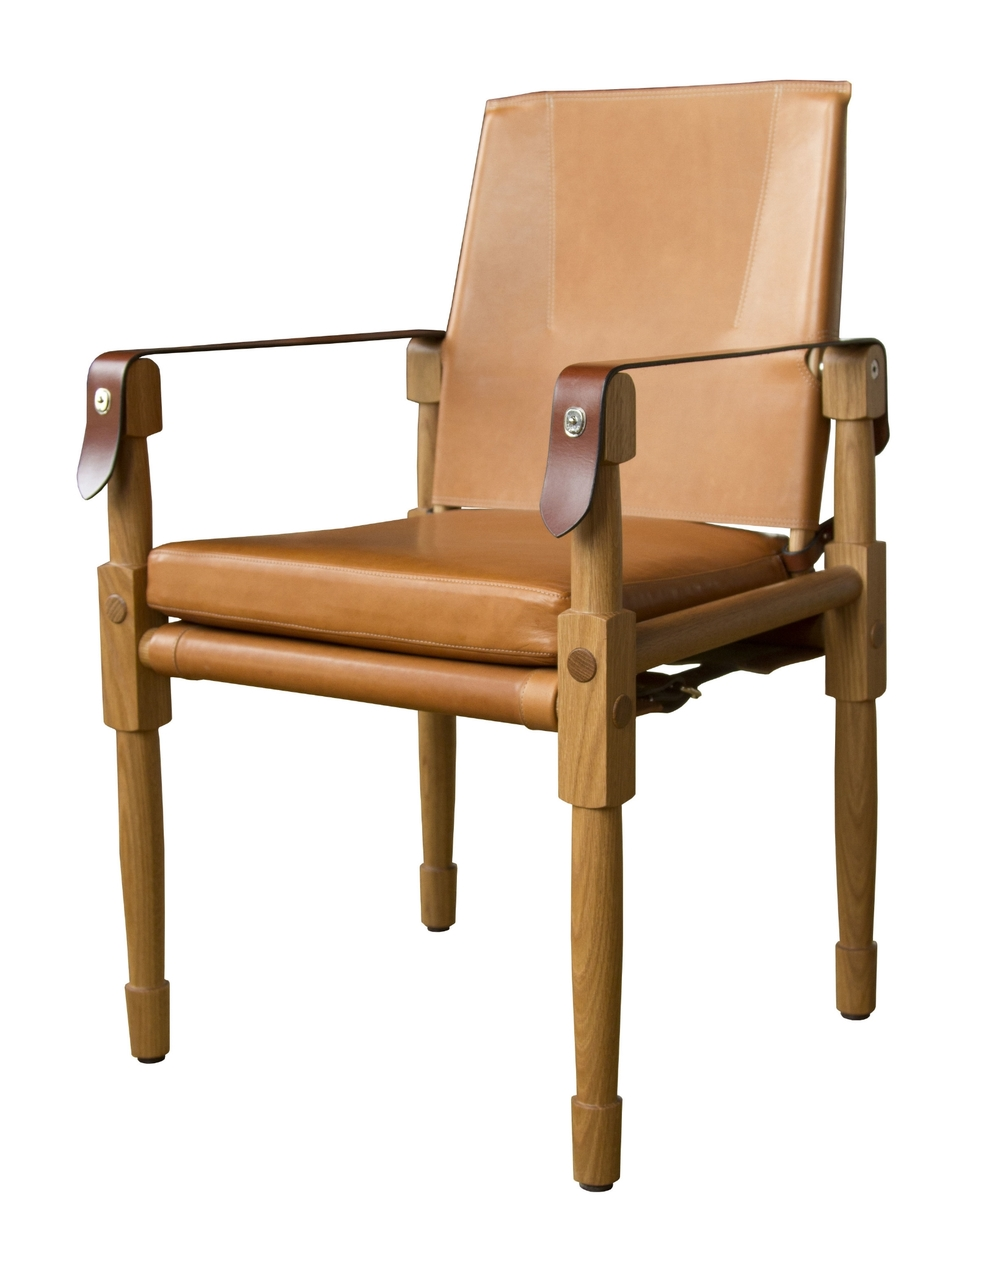 Chatwin Dining/Desk Chair  Oiled white oak with matte finish, Valhalla: nutmeg and saddle English bridle leather strapping